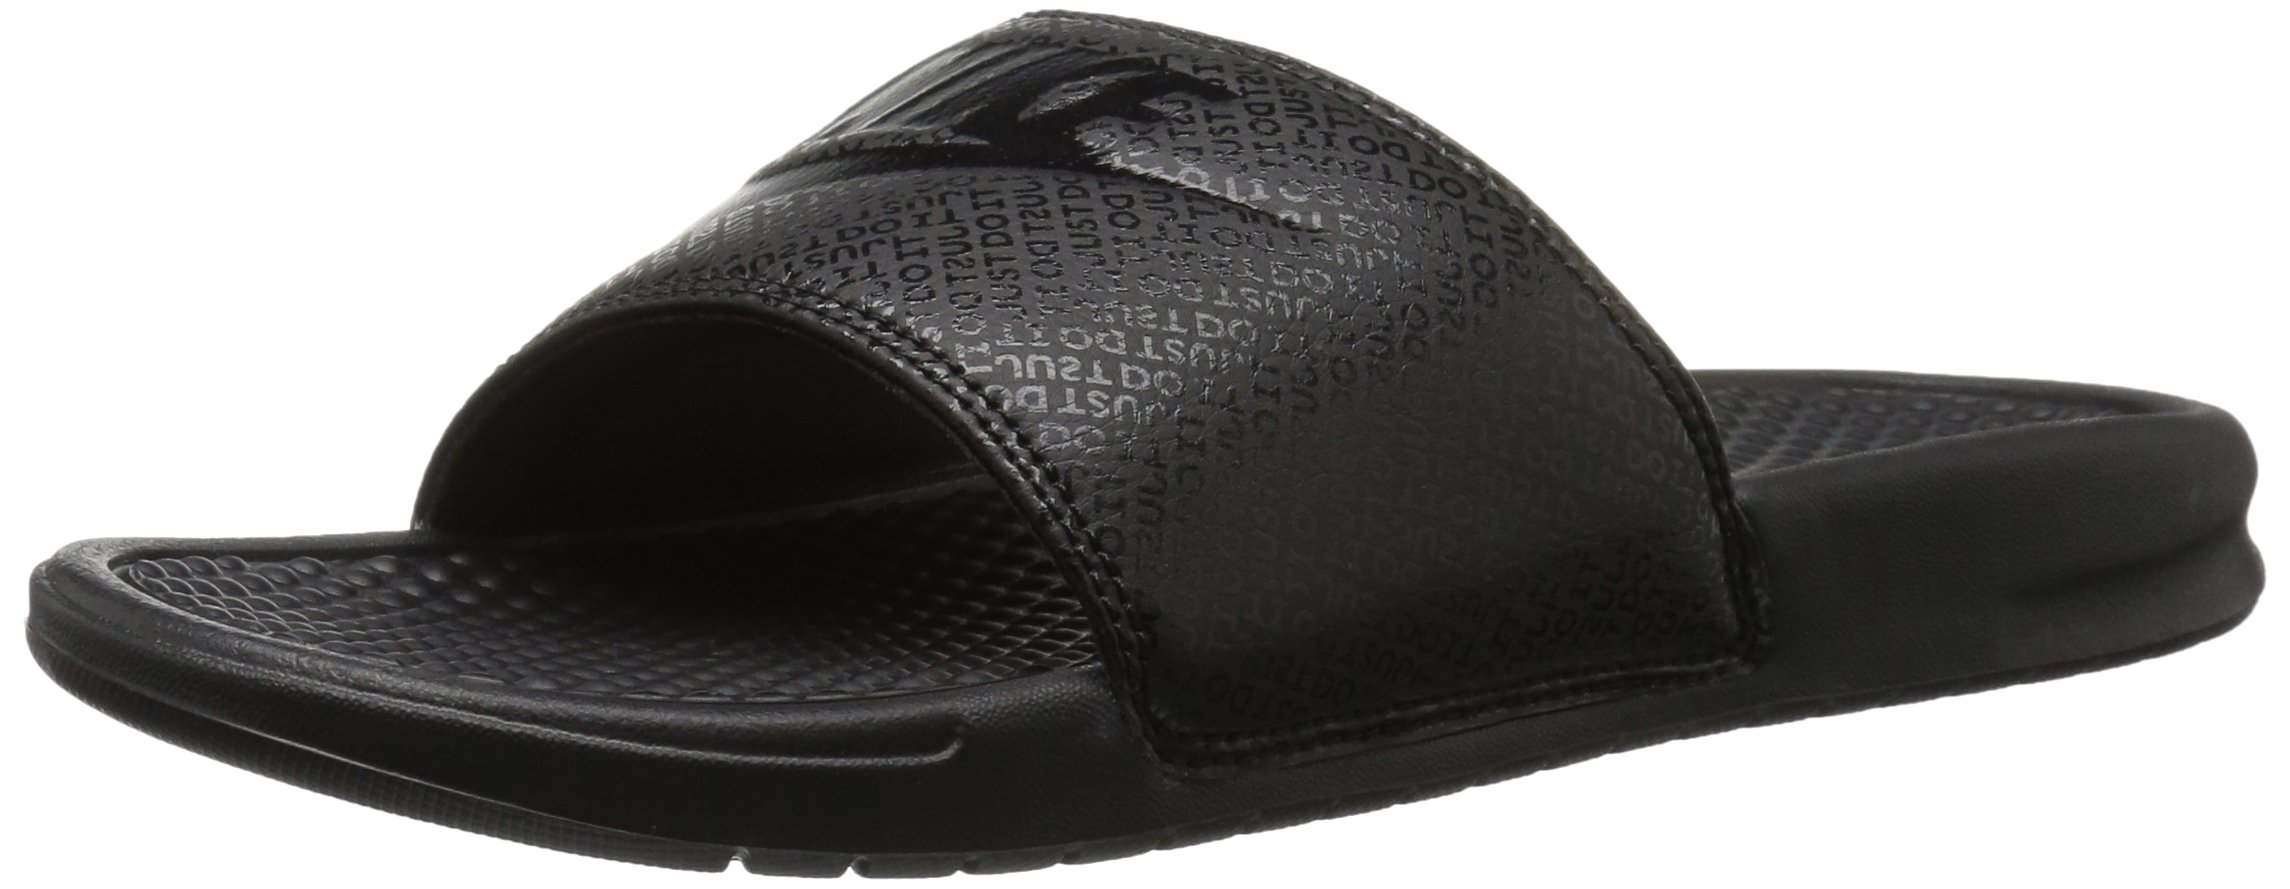 NIKE Men's Benassi Just Do It Slide Sandal, Black, 12 D(M) US by NIKE